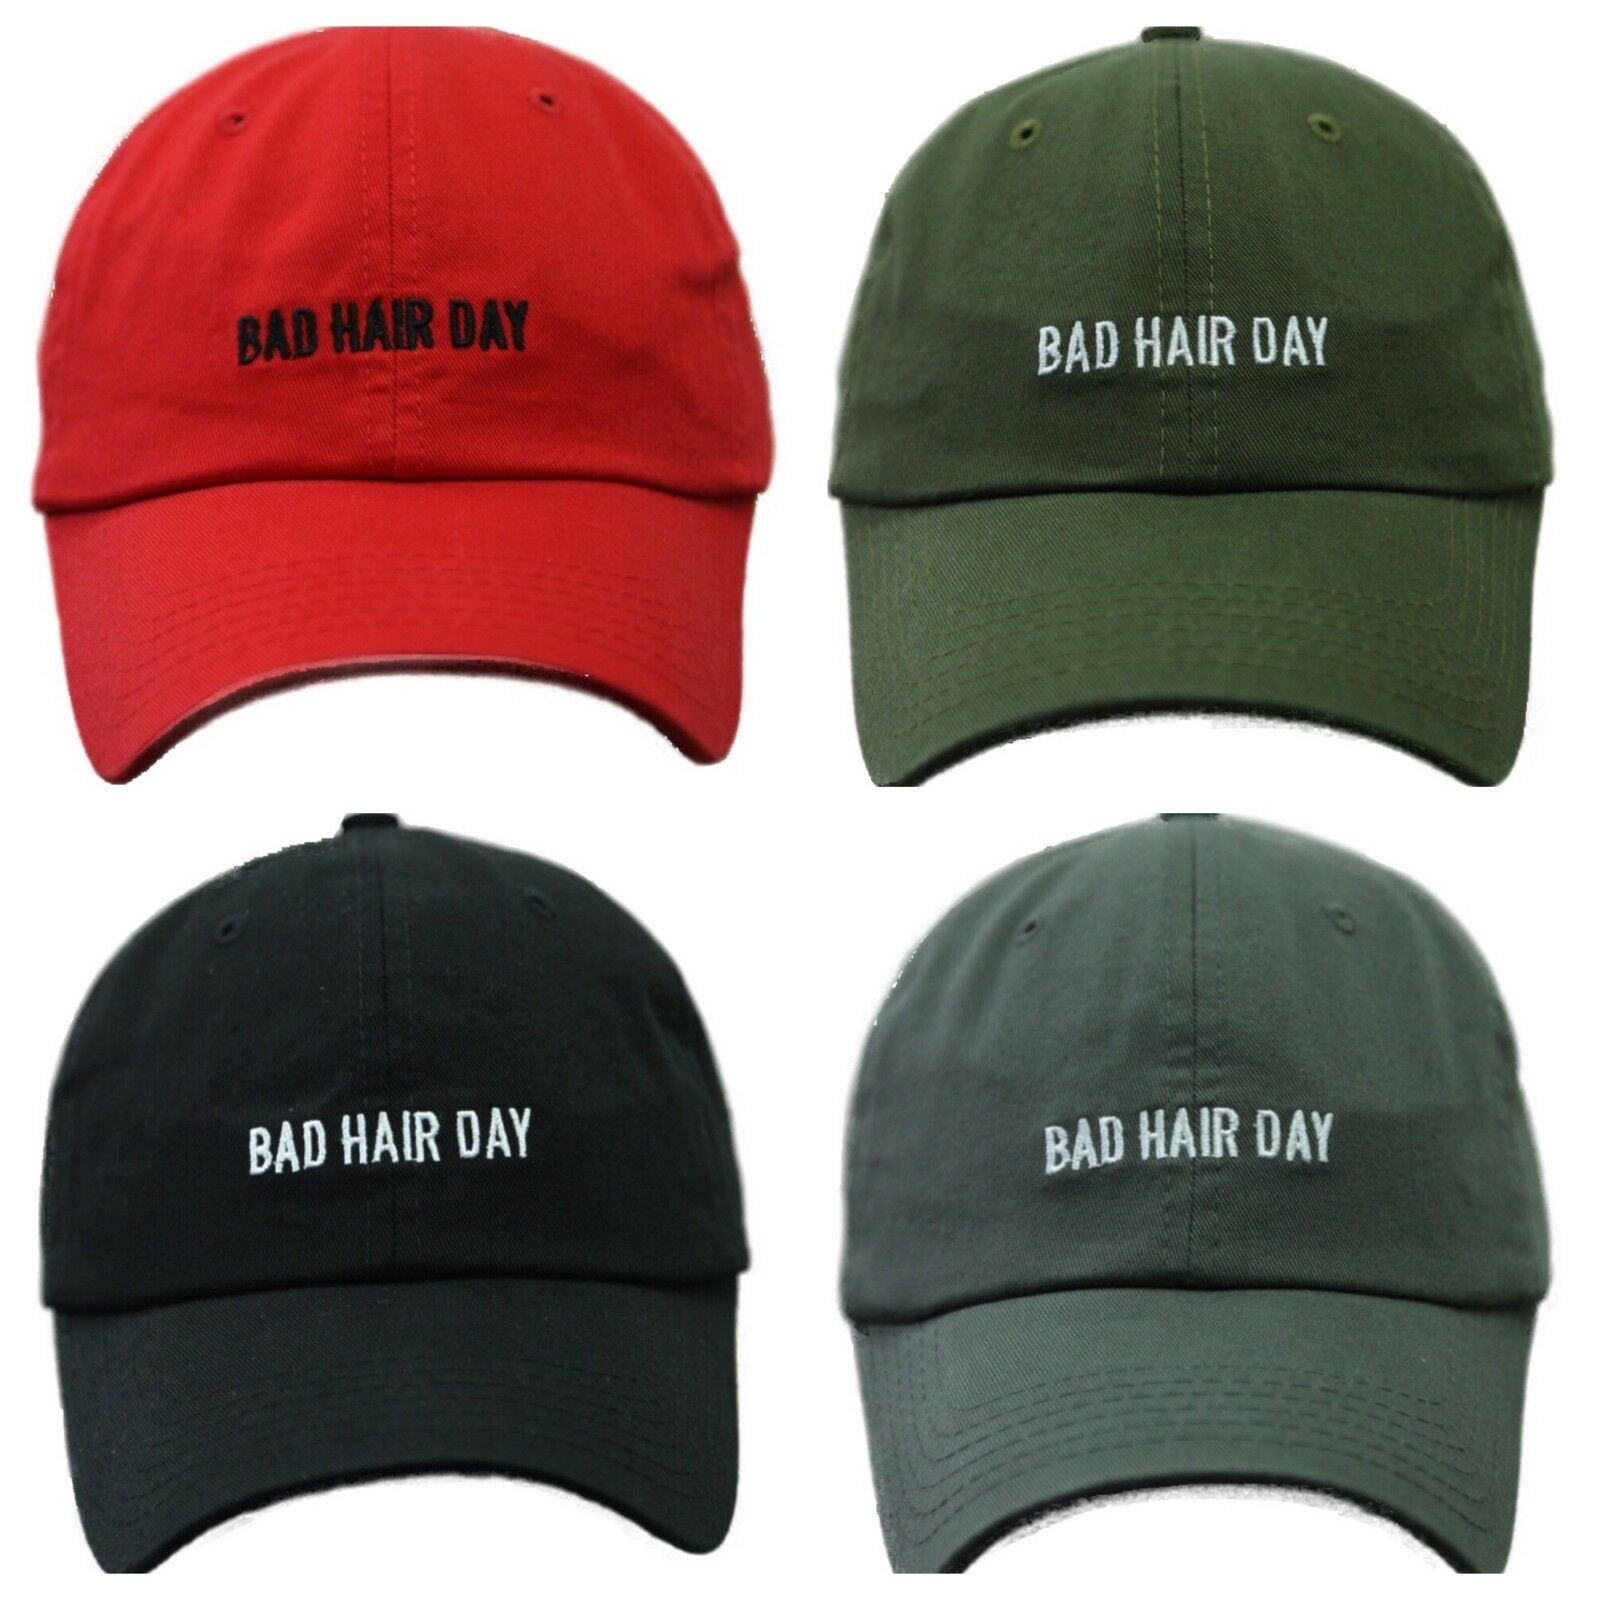 445e856e Bad Hair Day Dad Hat Plain Baseball Cap Unconstructed Fashion Casual Cotton  Caps 1 of 5FREE Shipping ...